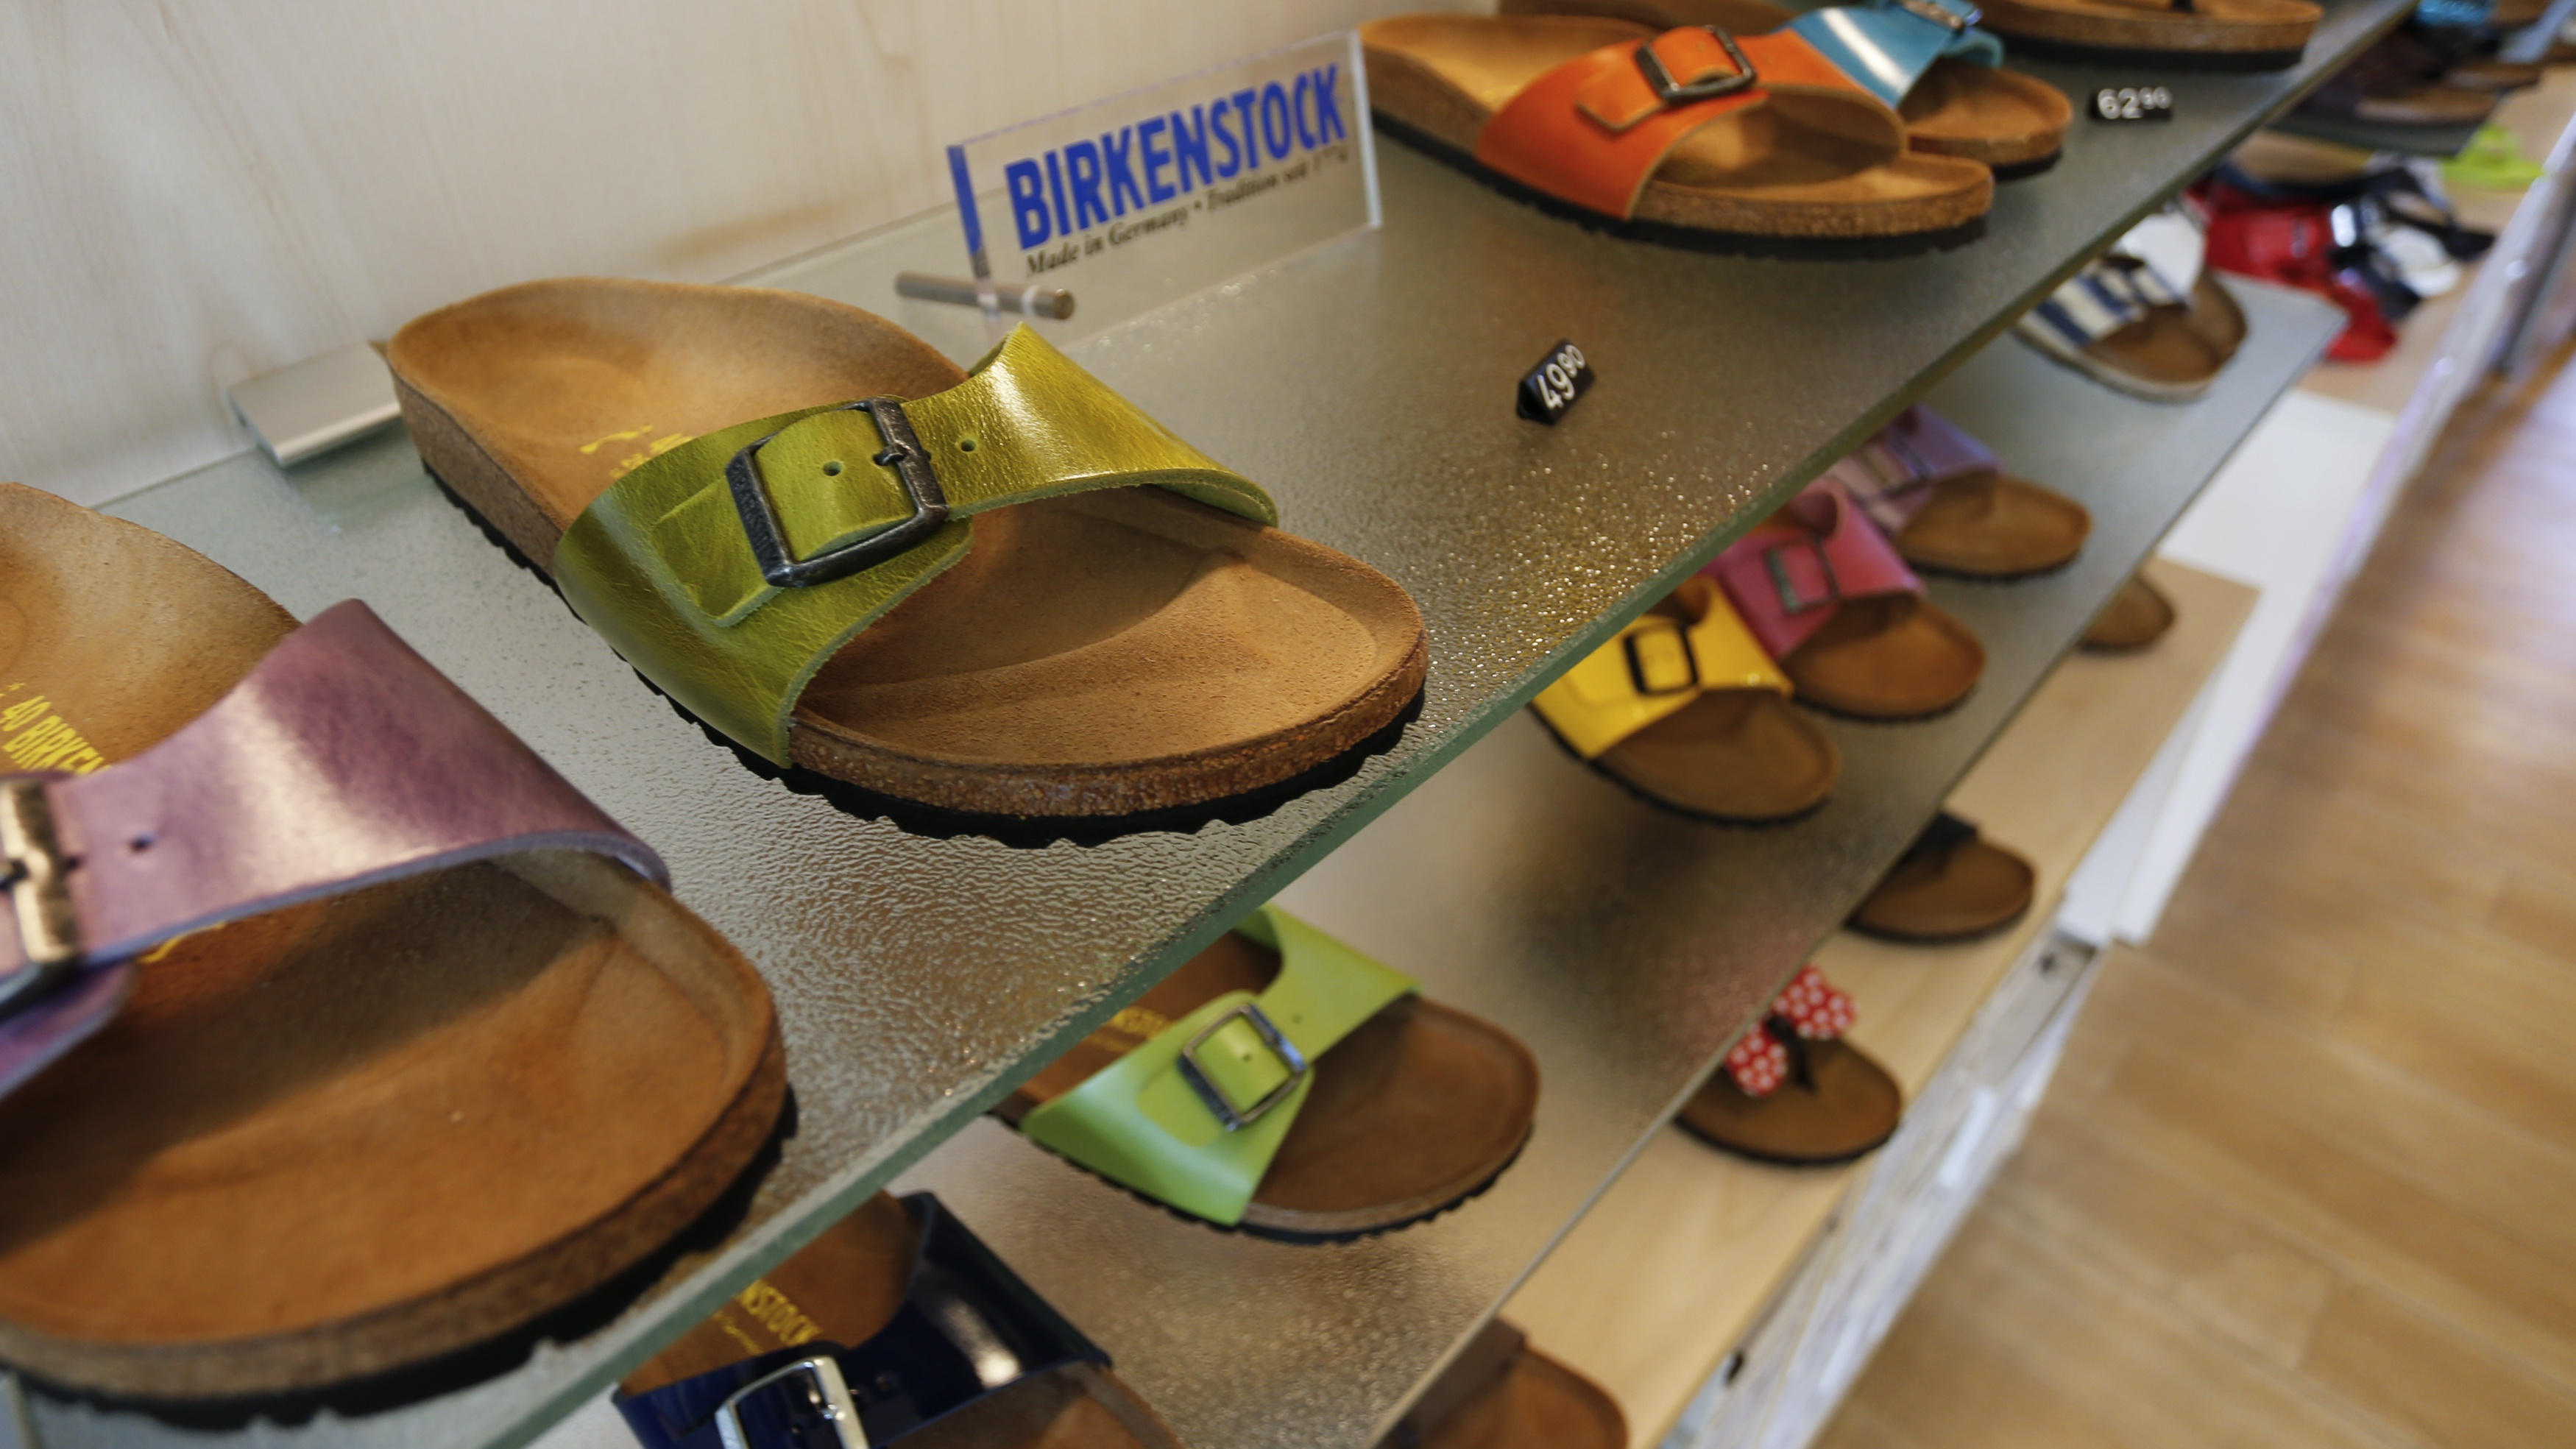 Birkenstock says Amazon is rife with counterfeits: How to